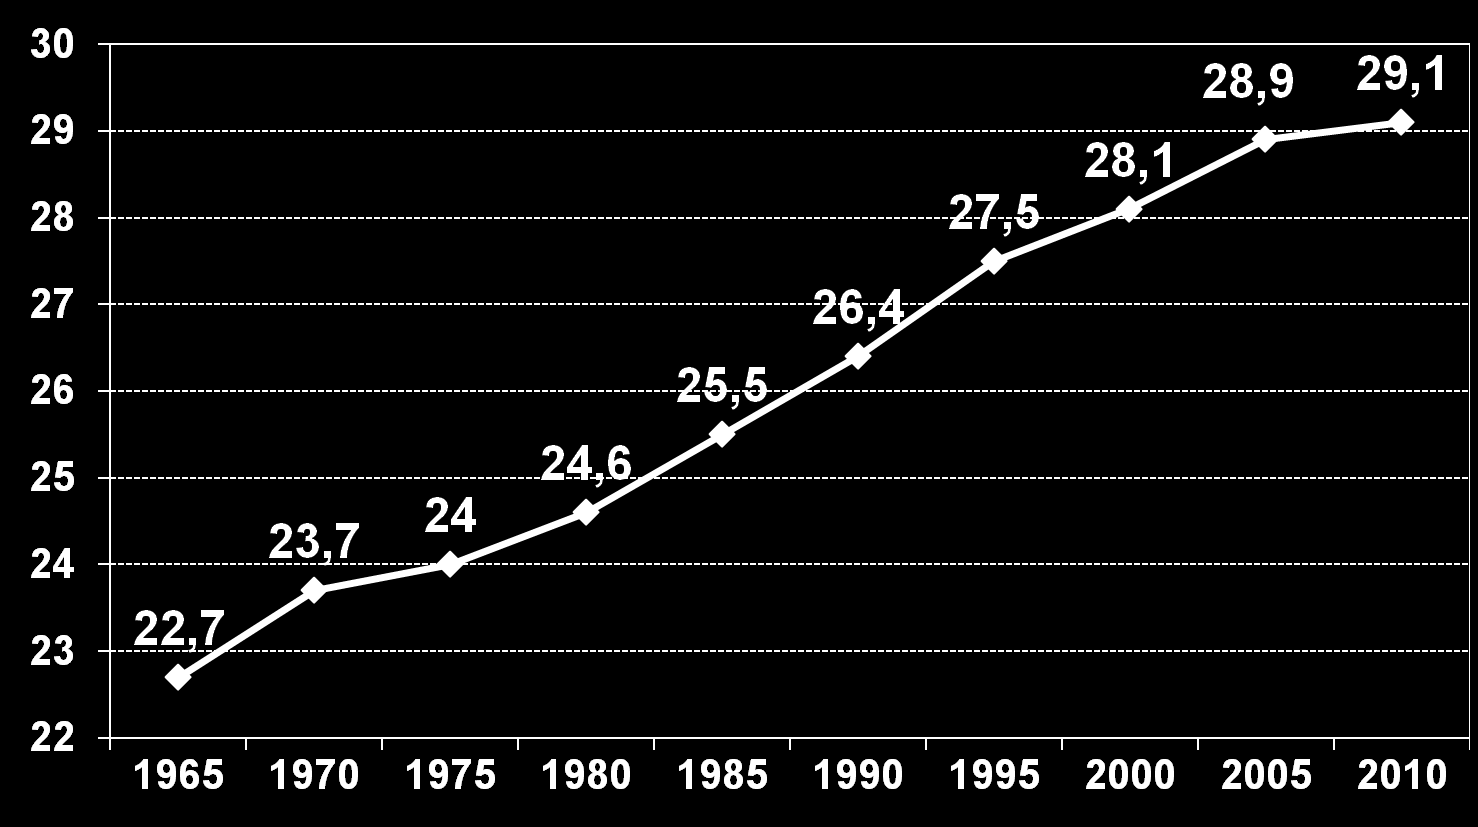 Age at first birth Denmark 1965-2010 Increase: 1